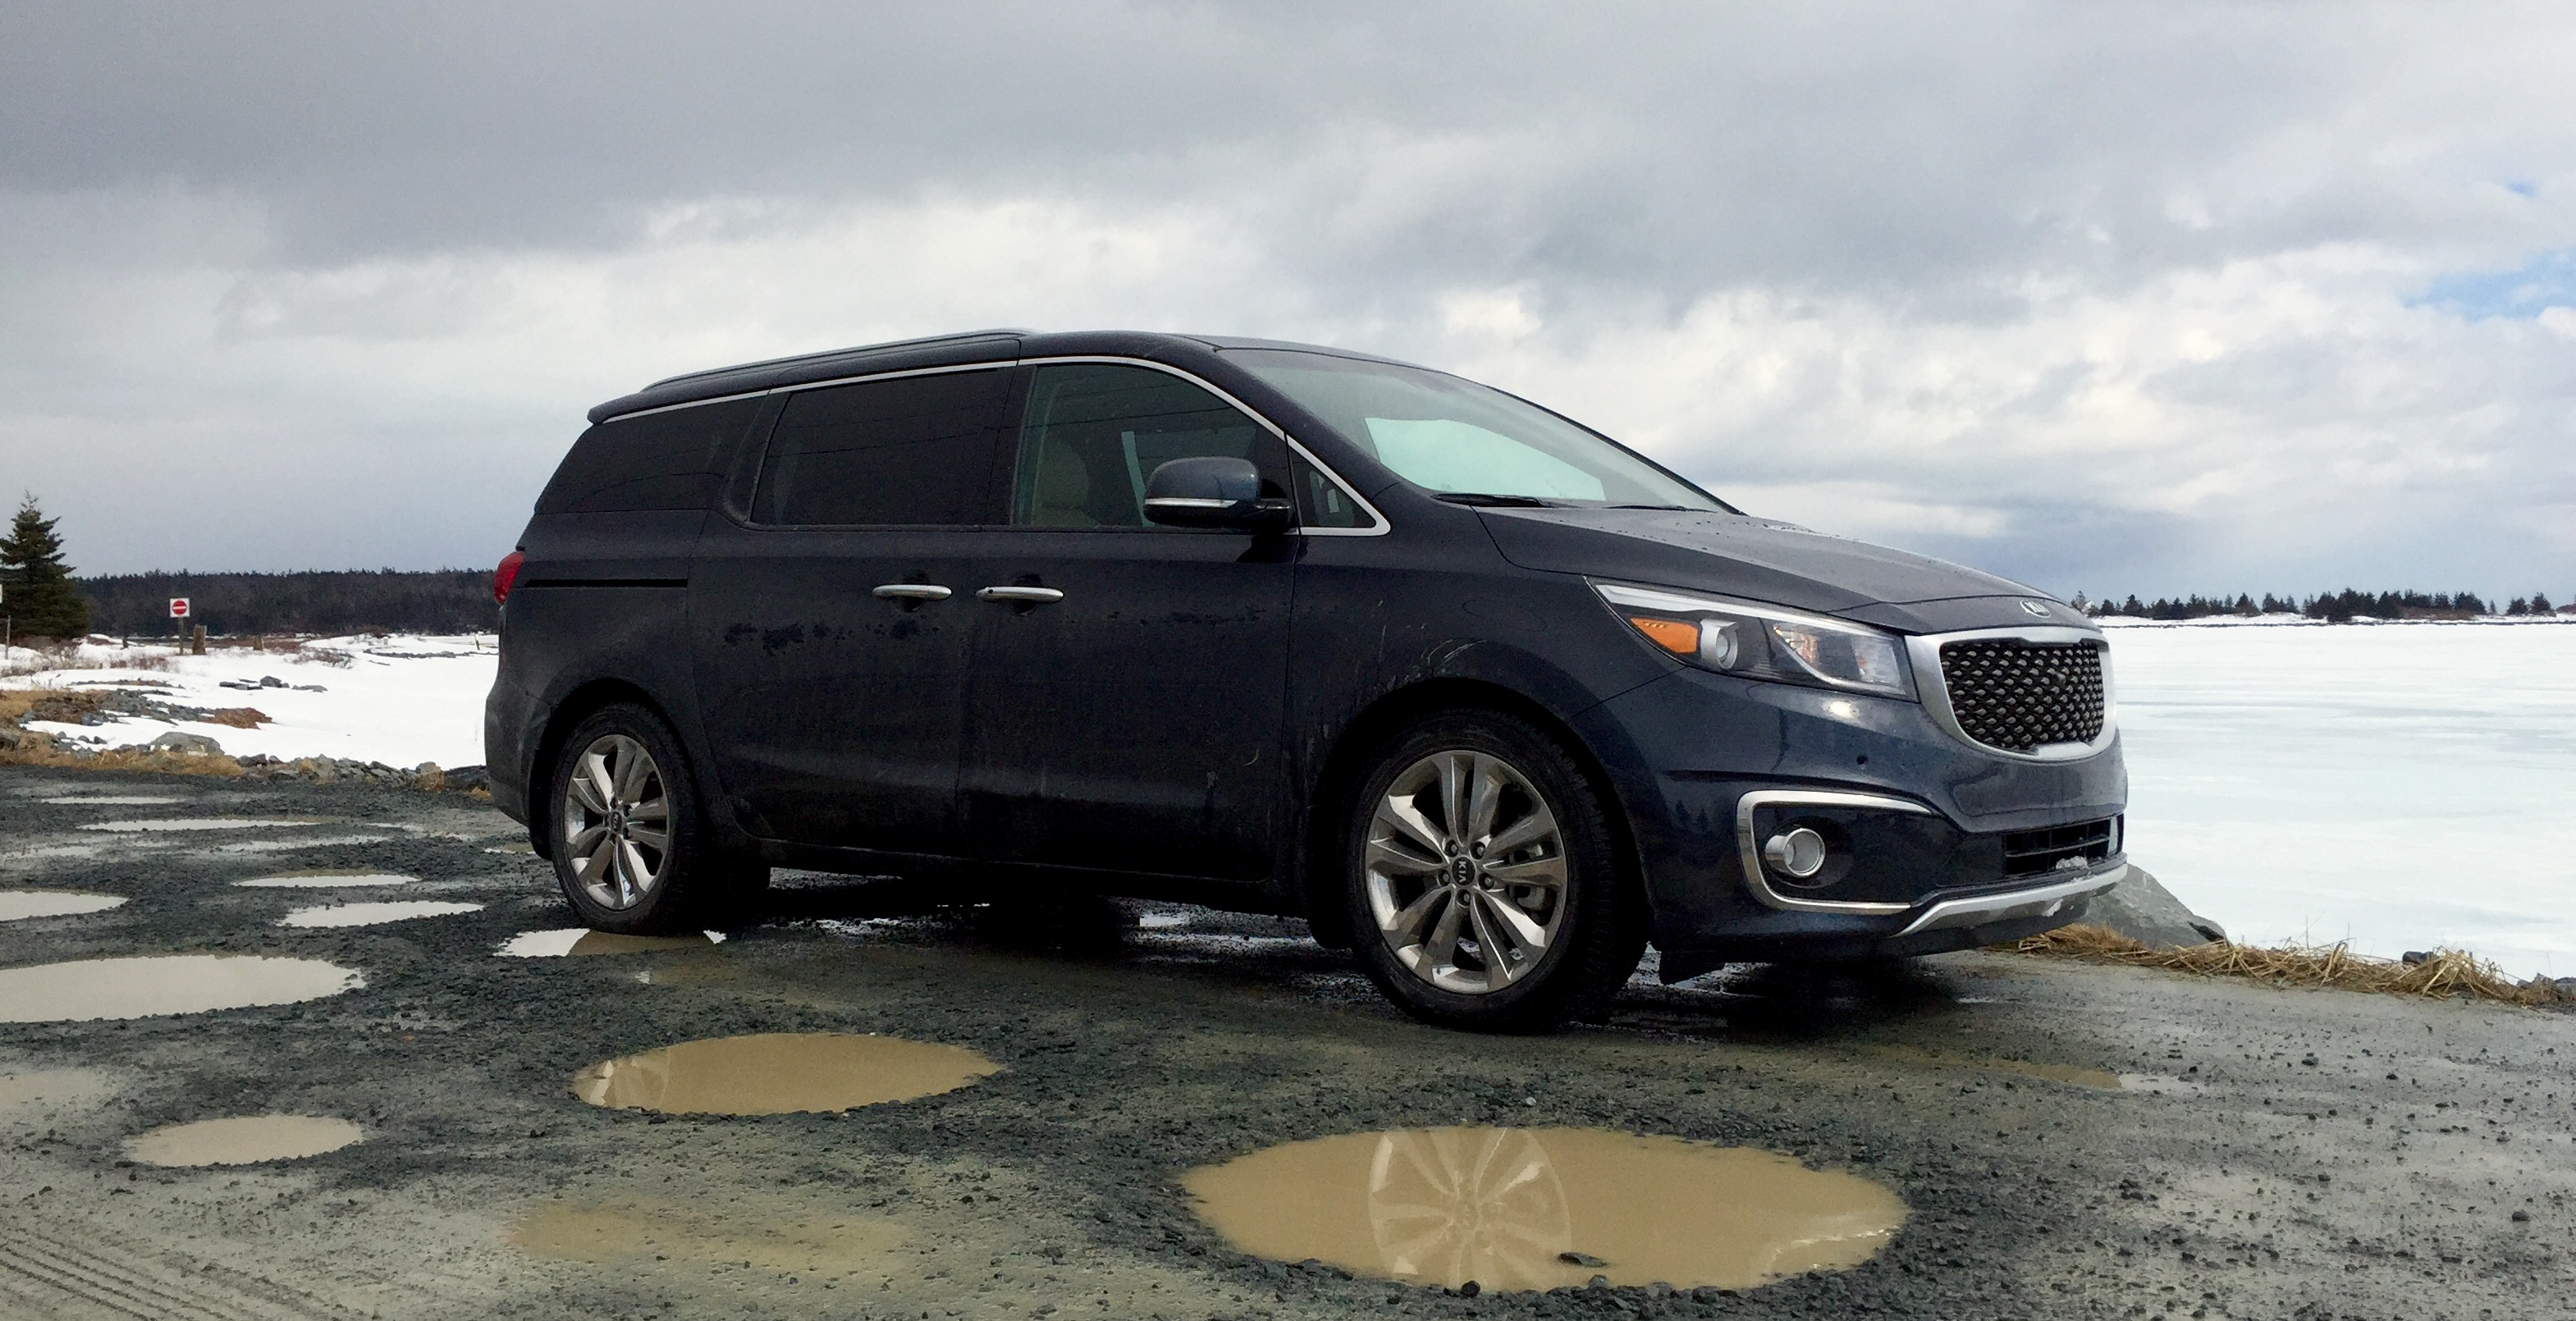 interior steps sxl sedona into the two minivan box batters review with low kia strikes